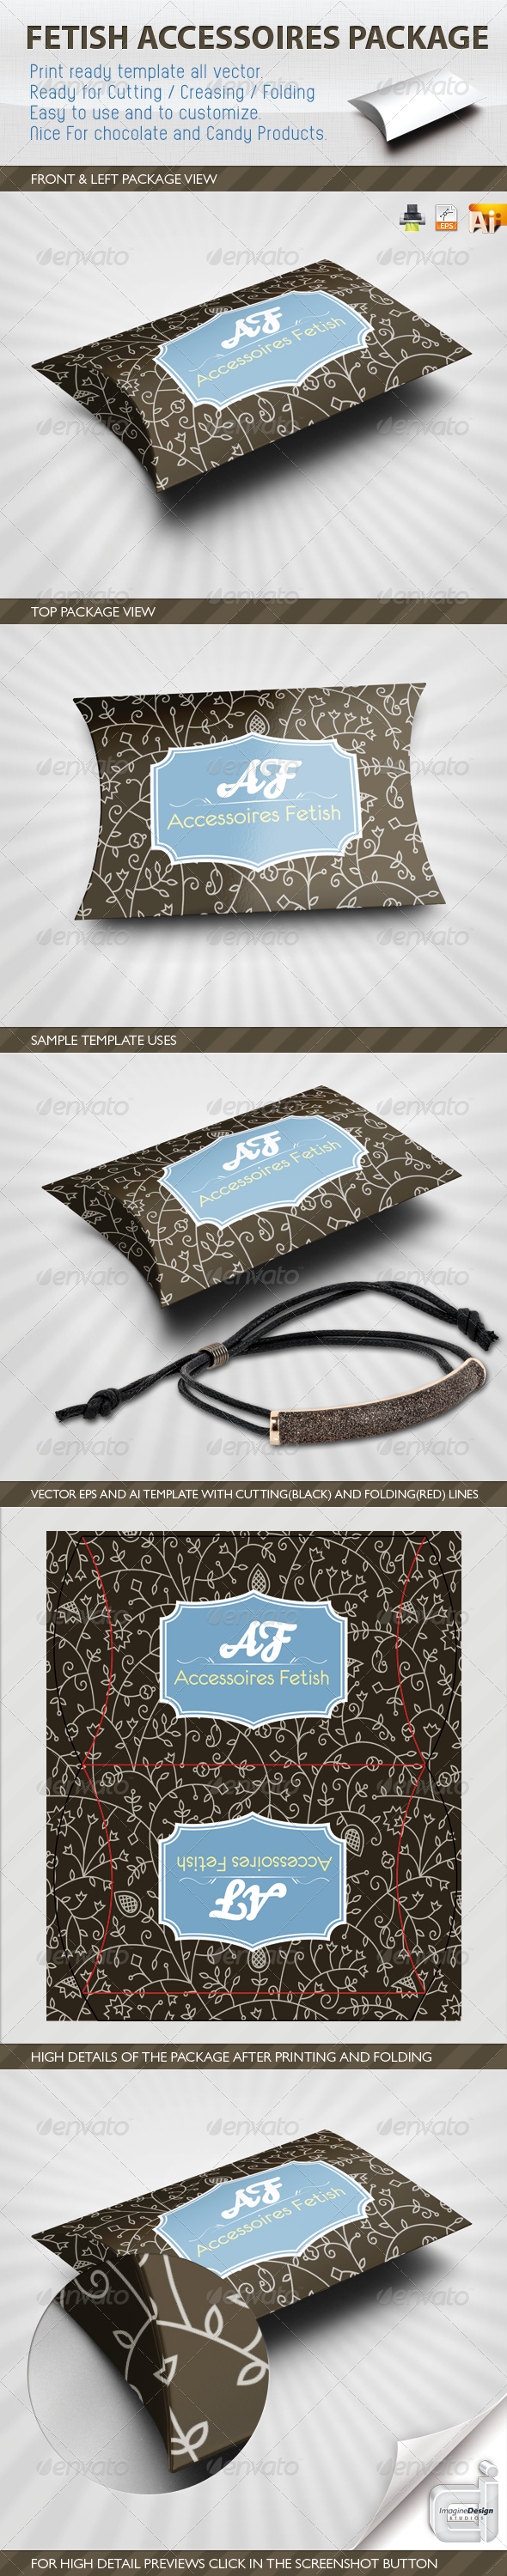 Accessory Fetish Package Template - Packaging Print Templates